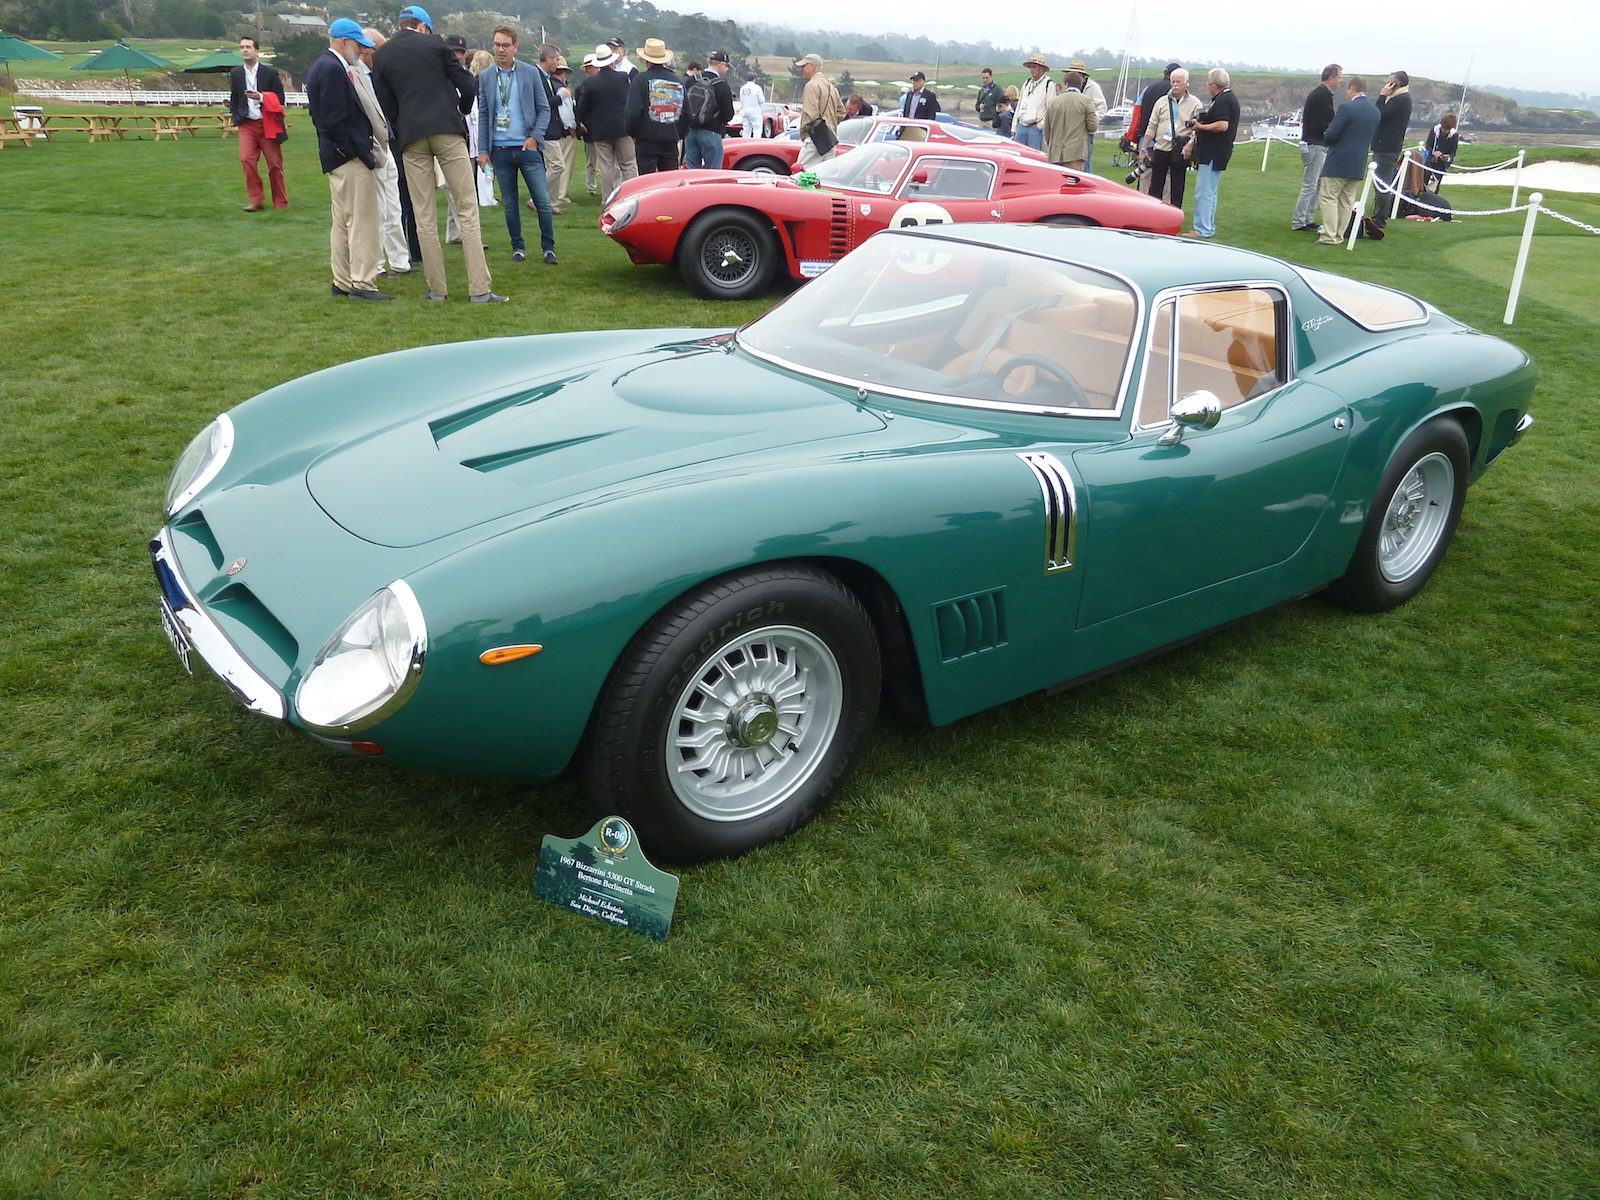 The Bizzarrini Class At Pebble Beach Was Awesome - Part 1